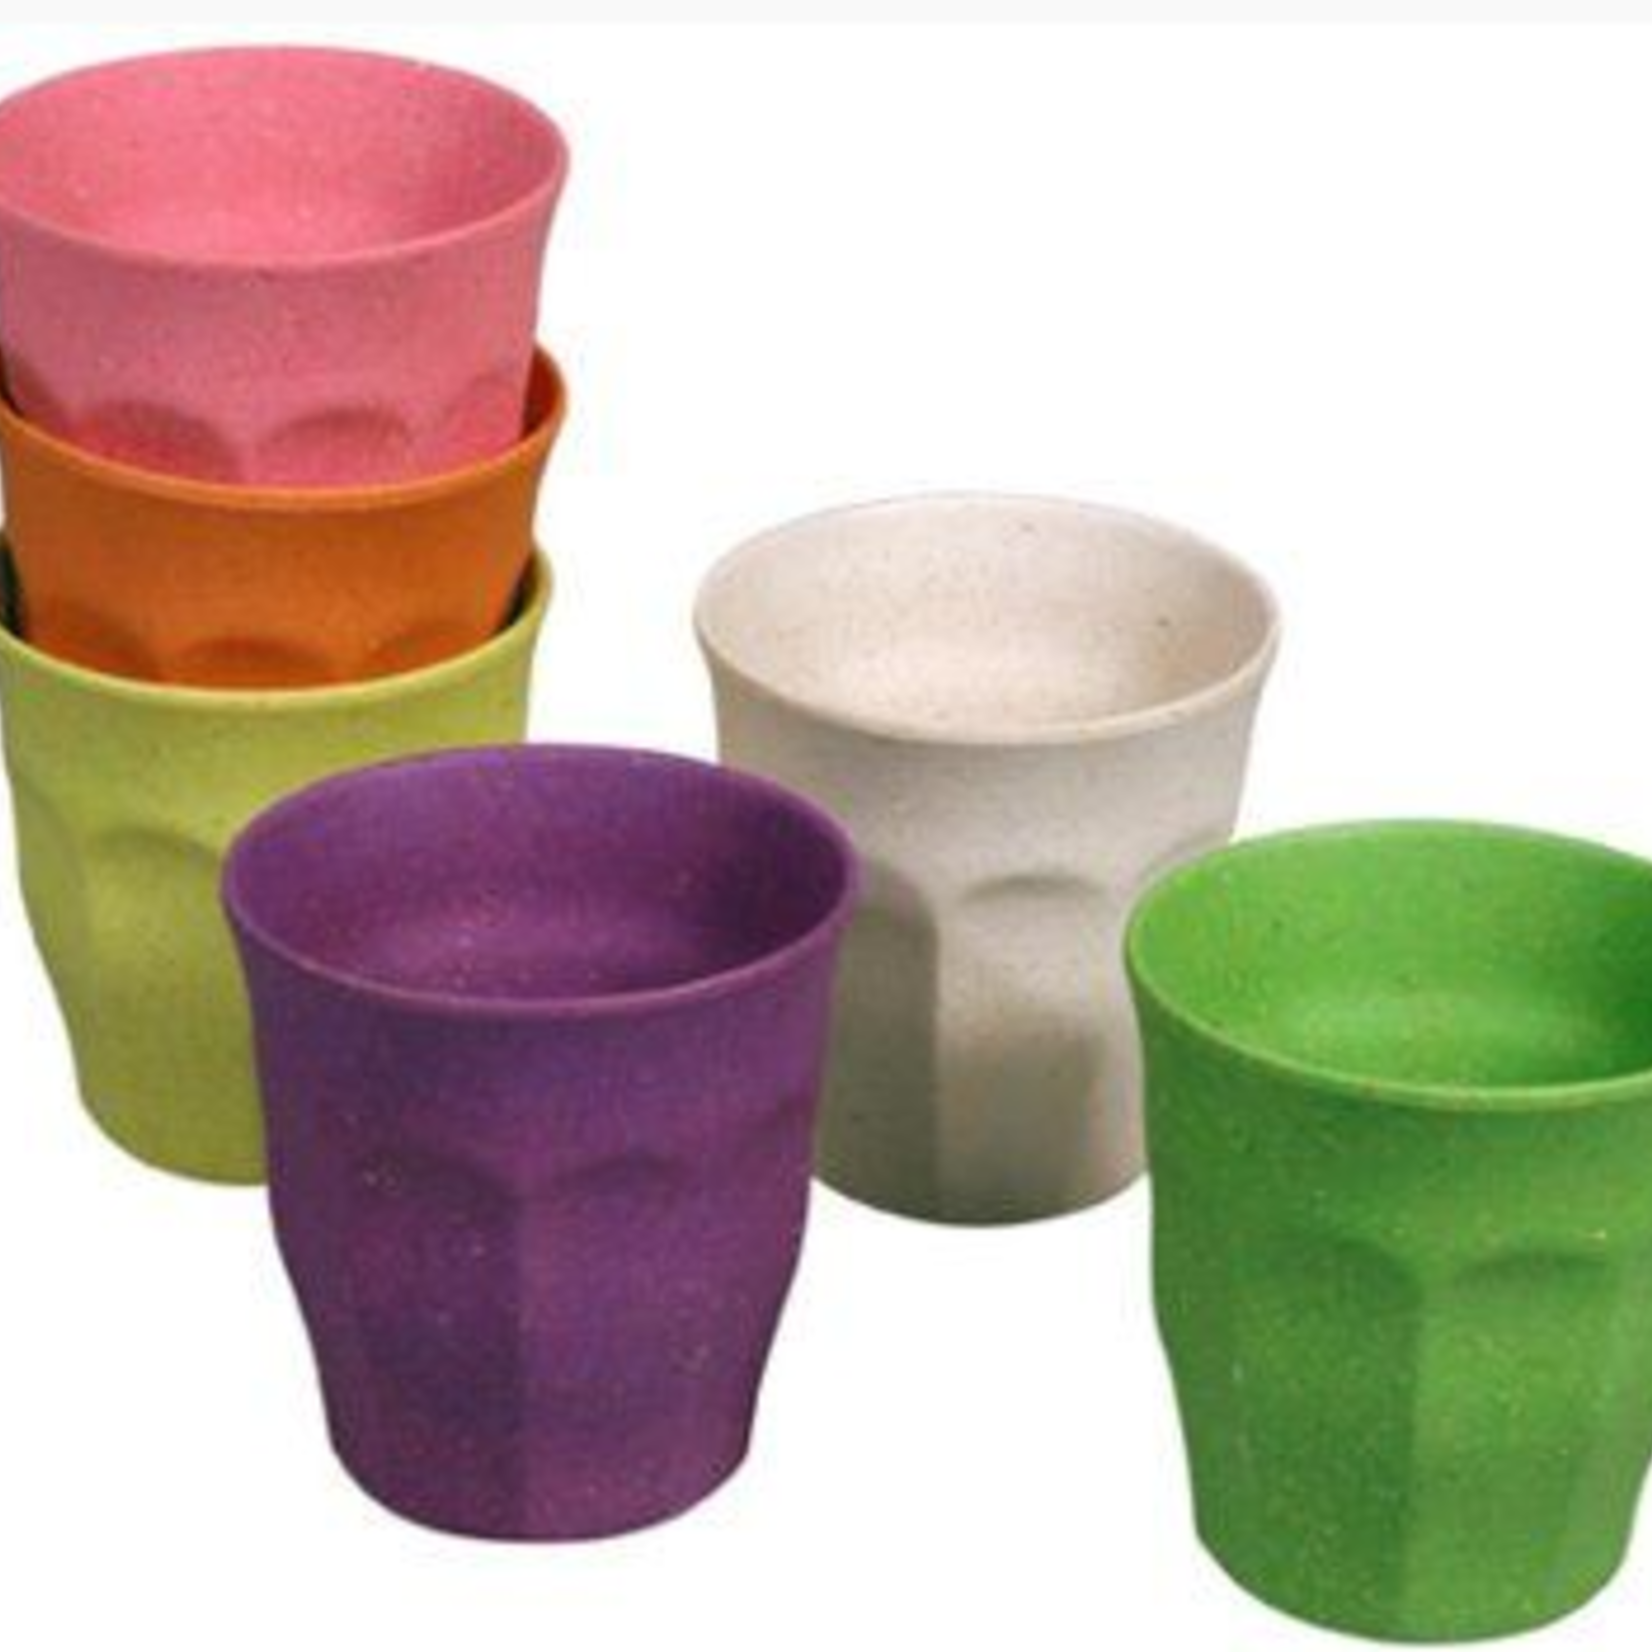 Zuperzozial Cupful of Color - Drinkbekers medium